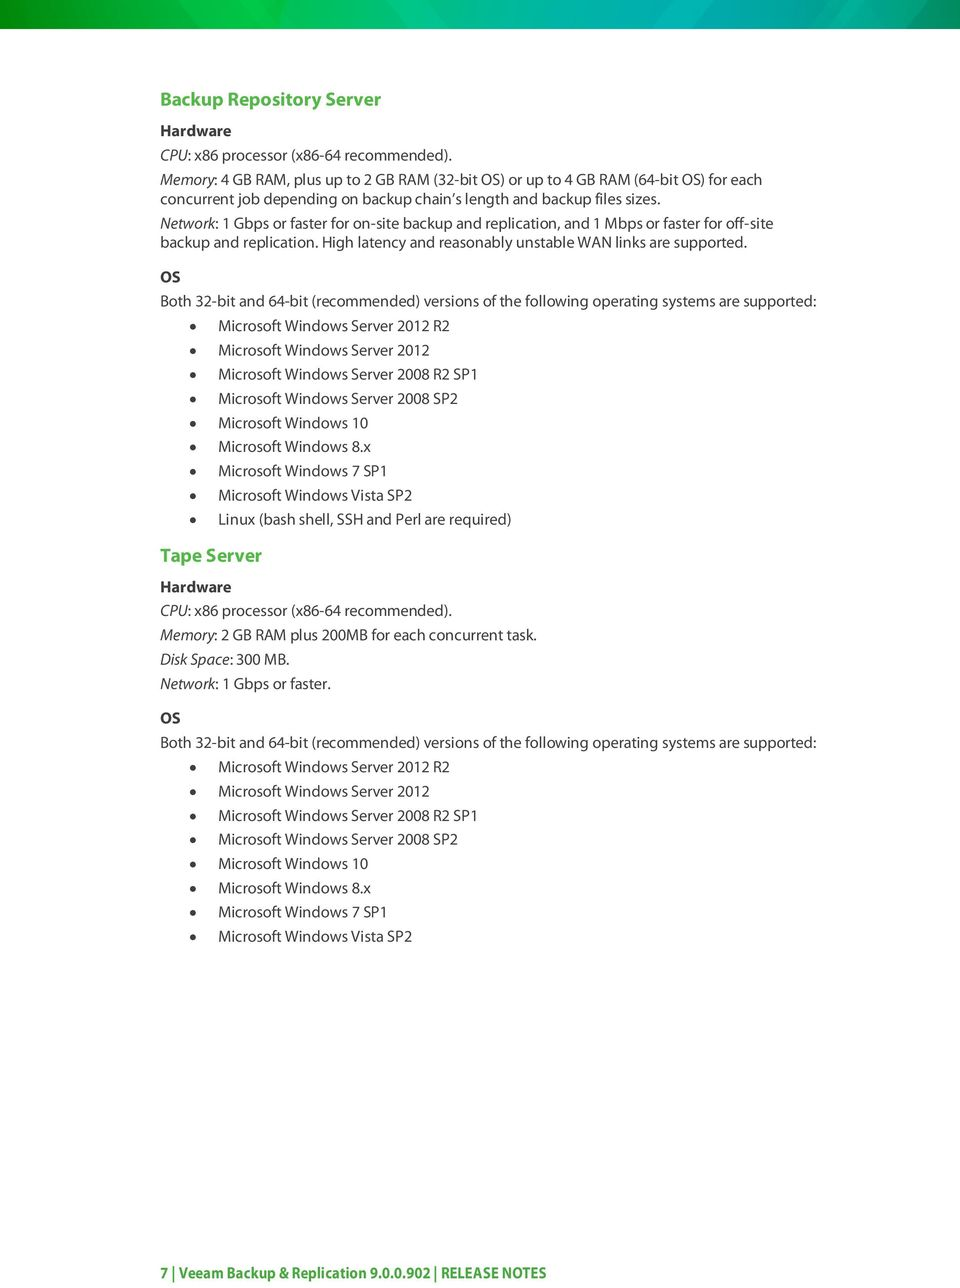 VEEAM BACKUP & REPLICATION 9 0 RELEASE NOTES - PDF